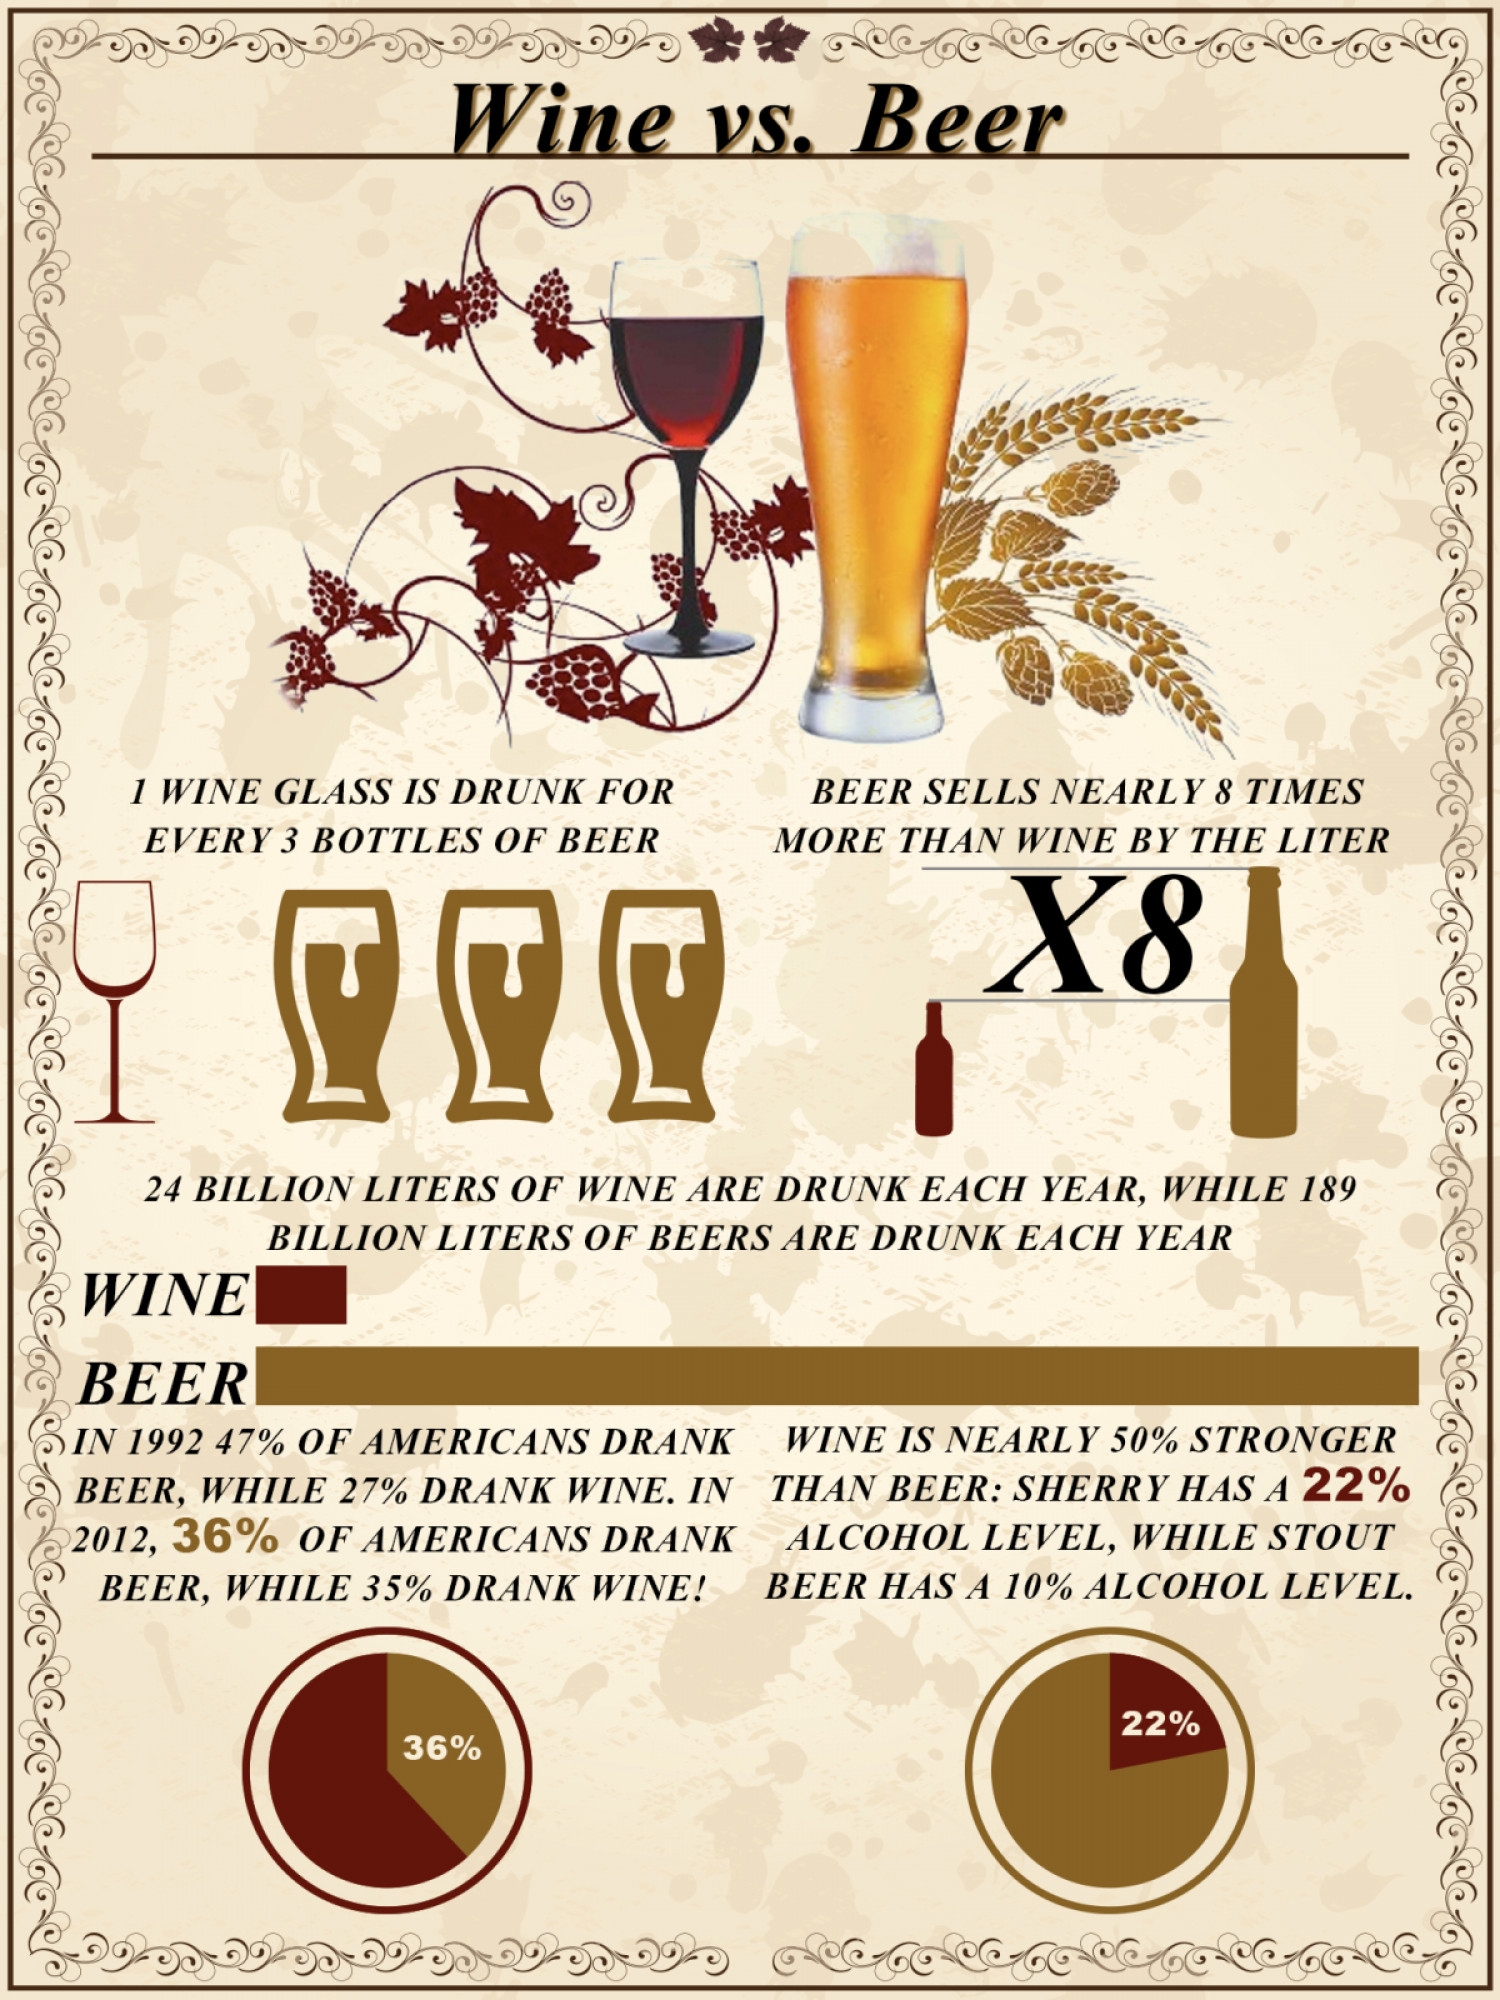 Wine vs. Beer Infographic